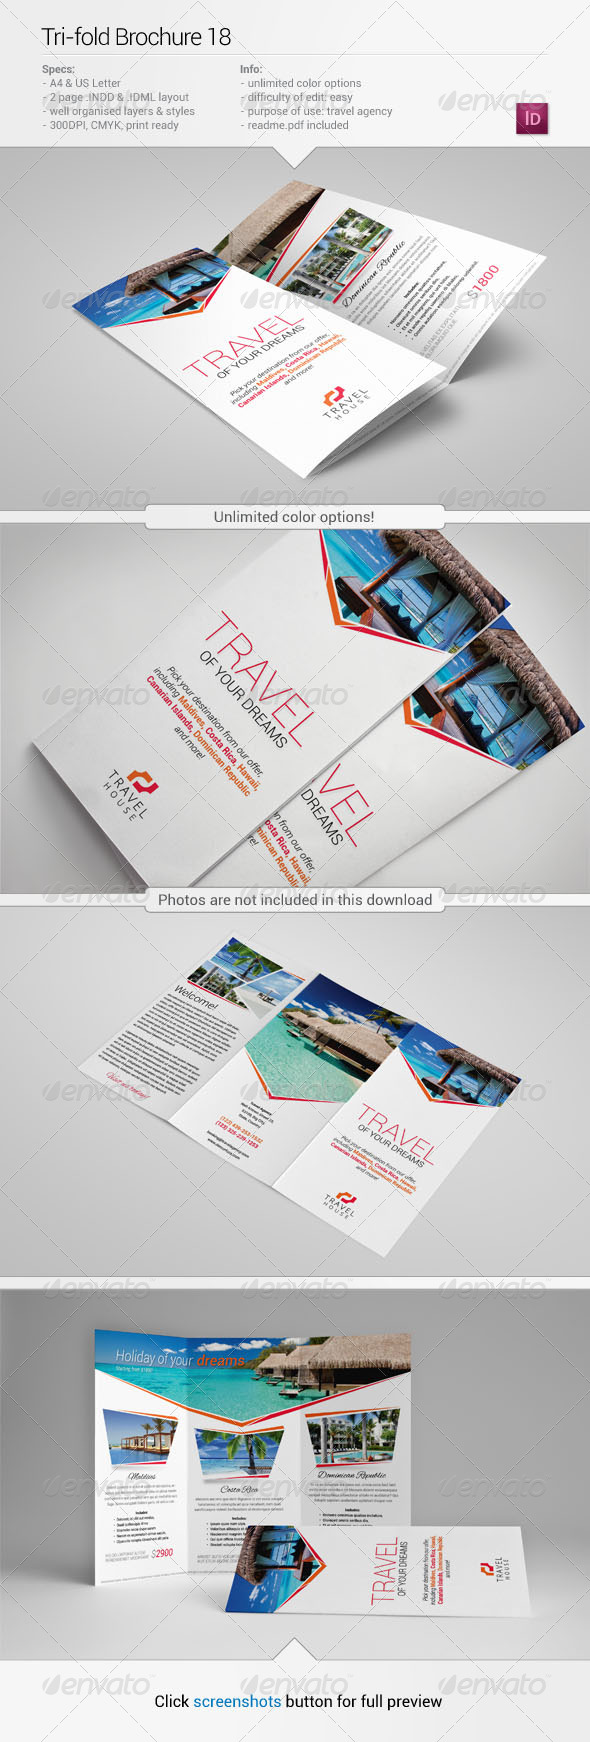 GraphicRiver Tri-Fold Brochure 18 5956963